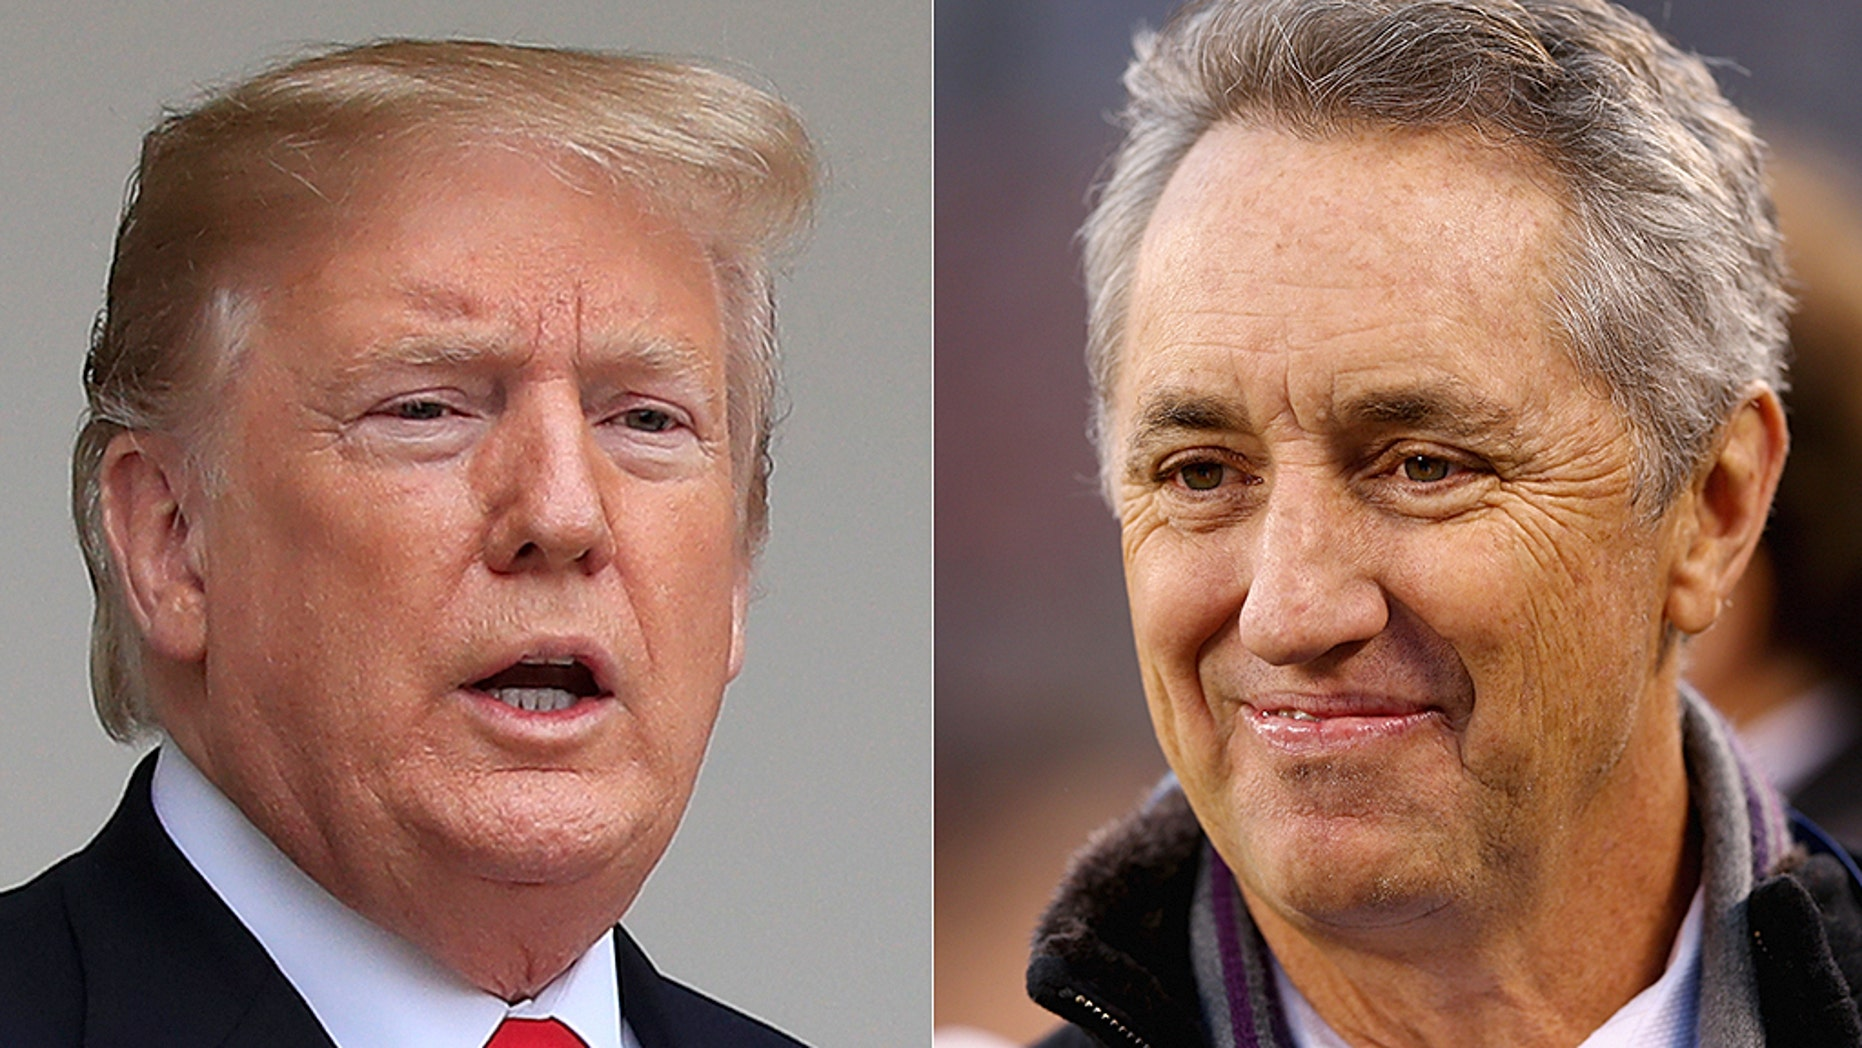 President Trump is accused of cheating on golf by sports journalist Rick Reilly.